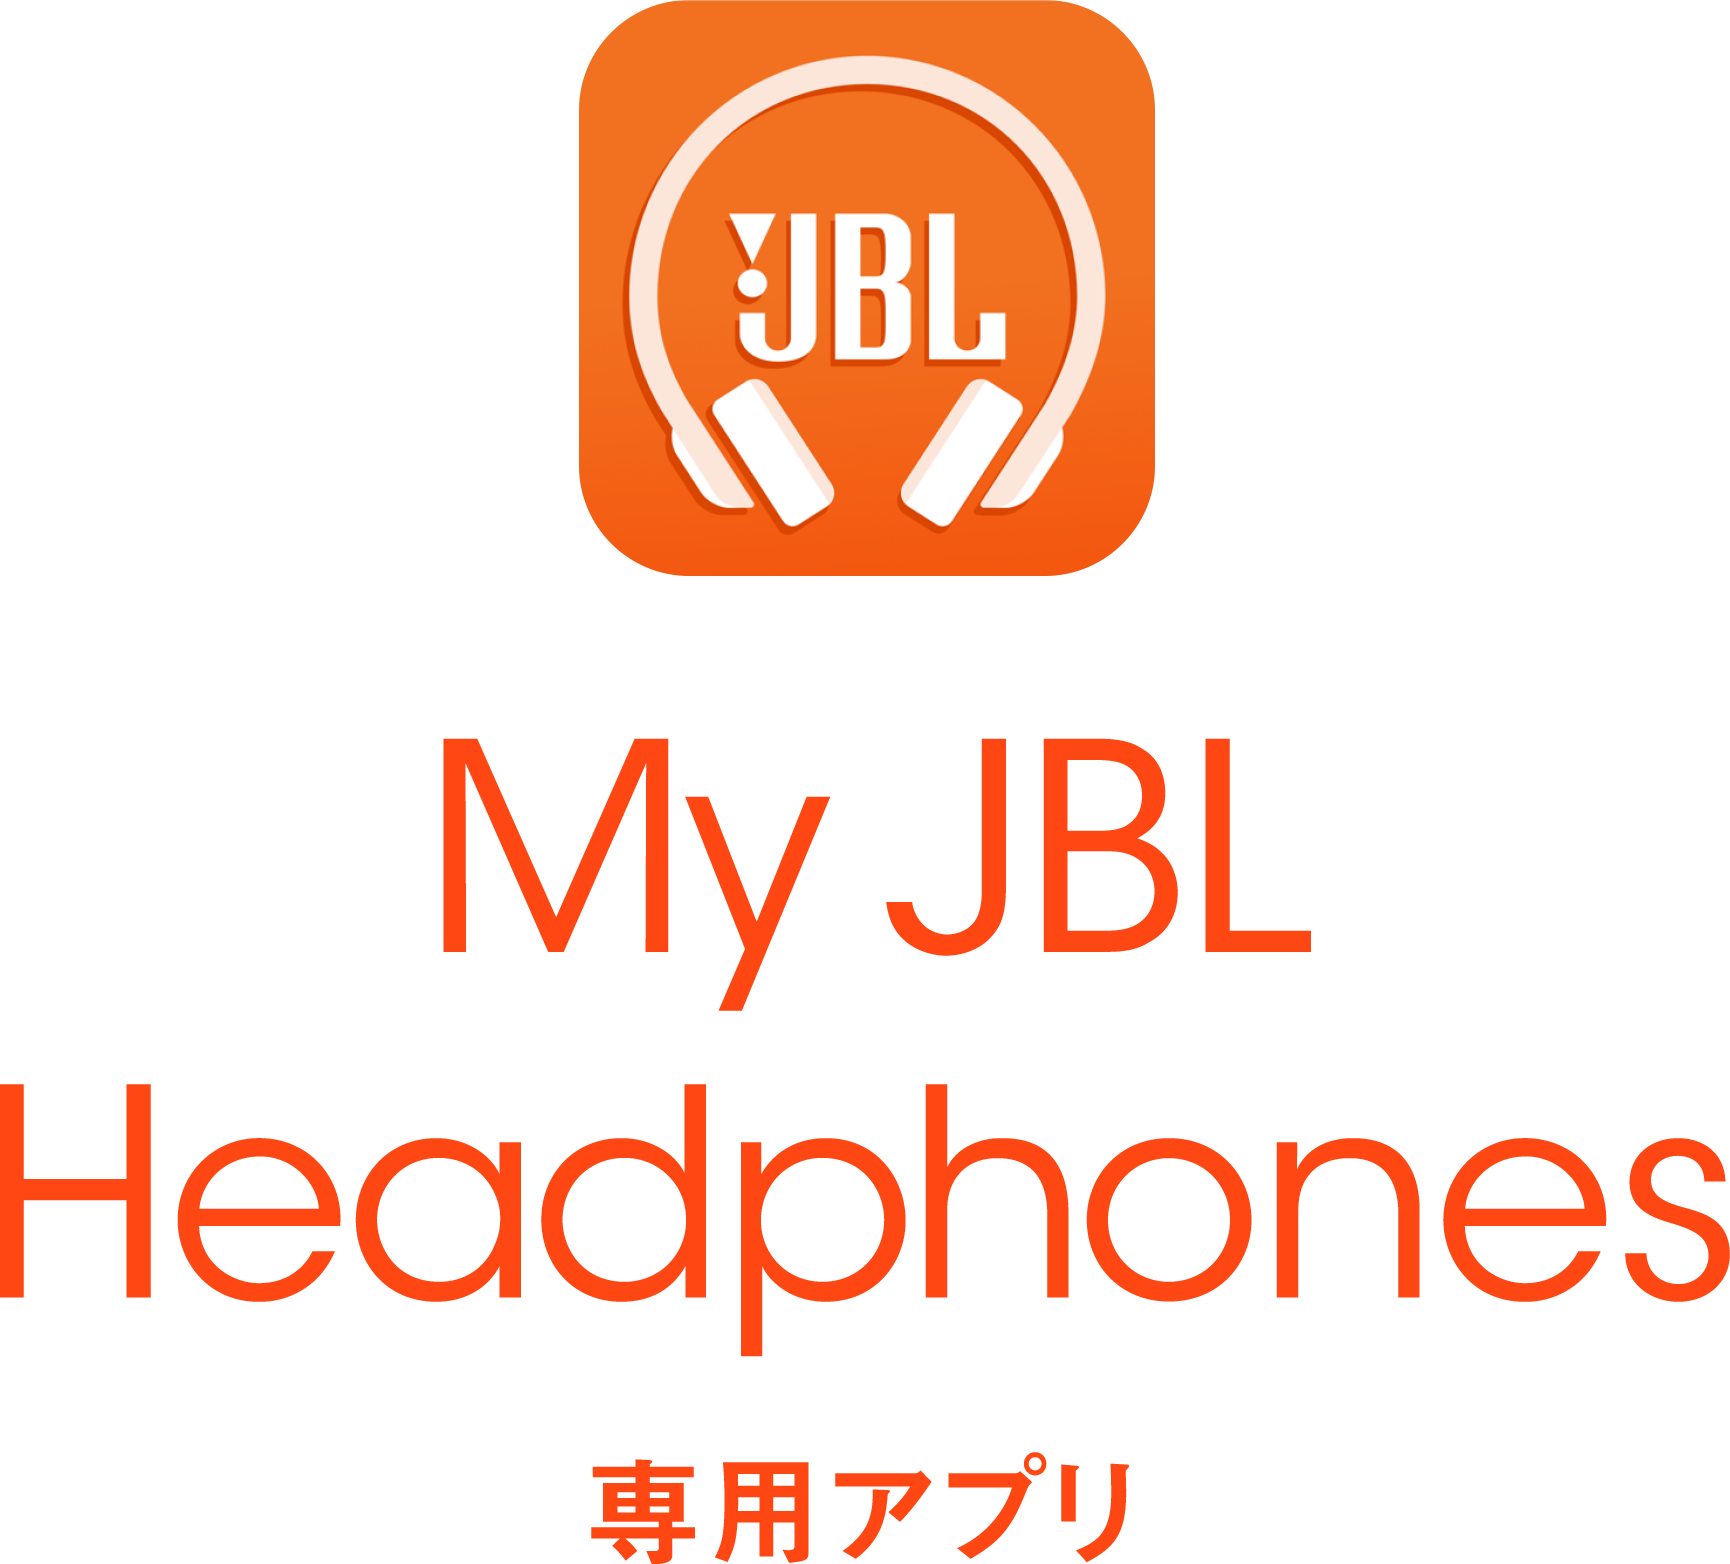 My JBL Headphones - 専用アプリ